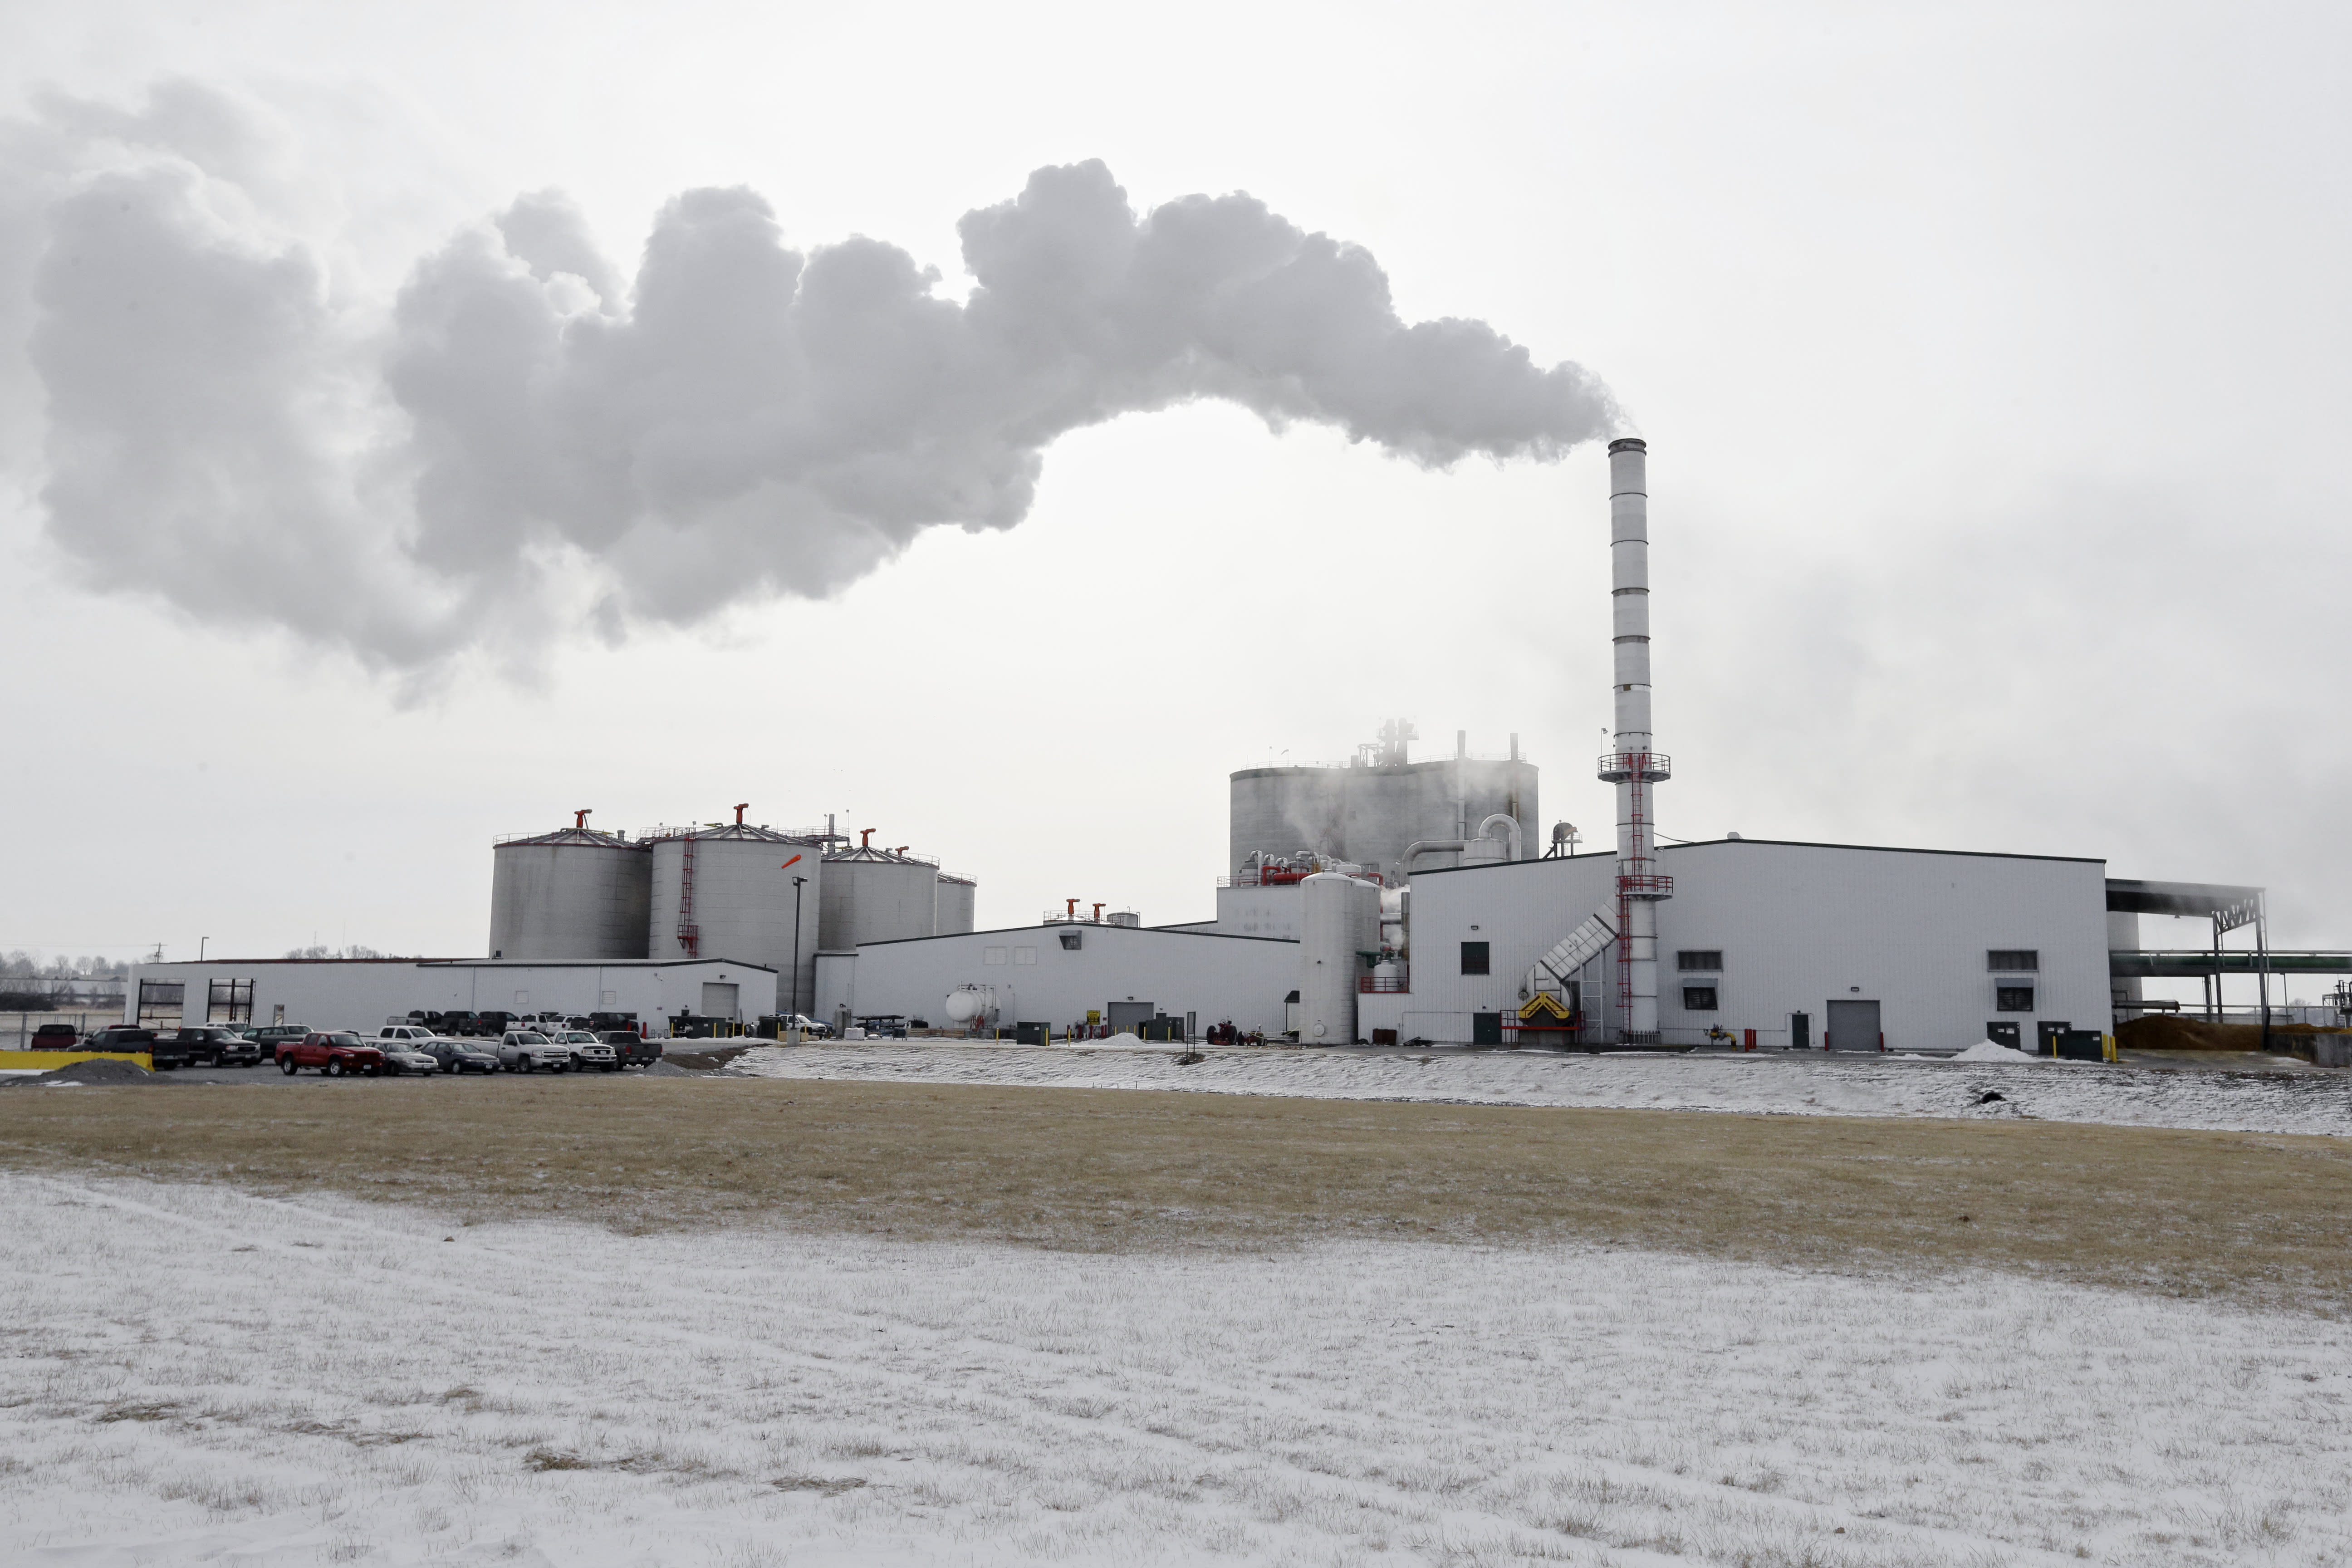 FILE - In this Jan. 6, 2015 file photo steam blows over the Green Plains ethanol plant in Shenandoah, Iowa. As hospitals and nursing homes run out of hand sanitizer to fight off the coronavirus, struggling ethanol producers are eager to help. They could provide alcohol to make millions of gallons of the germ-killing sanitizer, but the U.S. Food and Drug Administration has put up a roadblock, frustrating both the health care and ethanol industries with its inflexible regulations during a national health care crisis. (AP Photo/Nati Harnik, file)